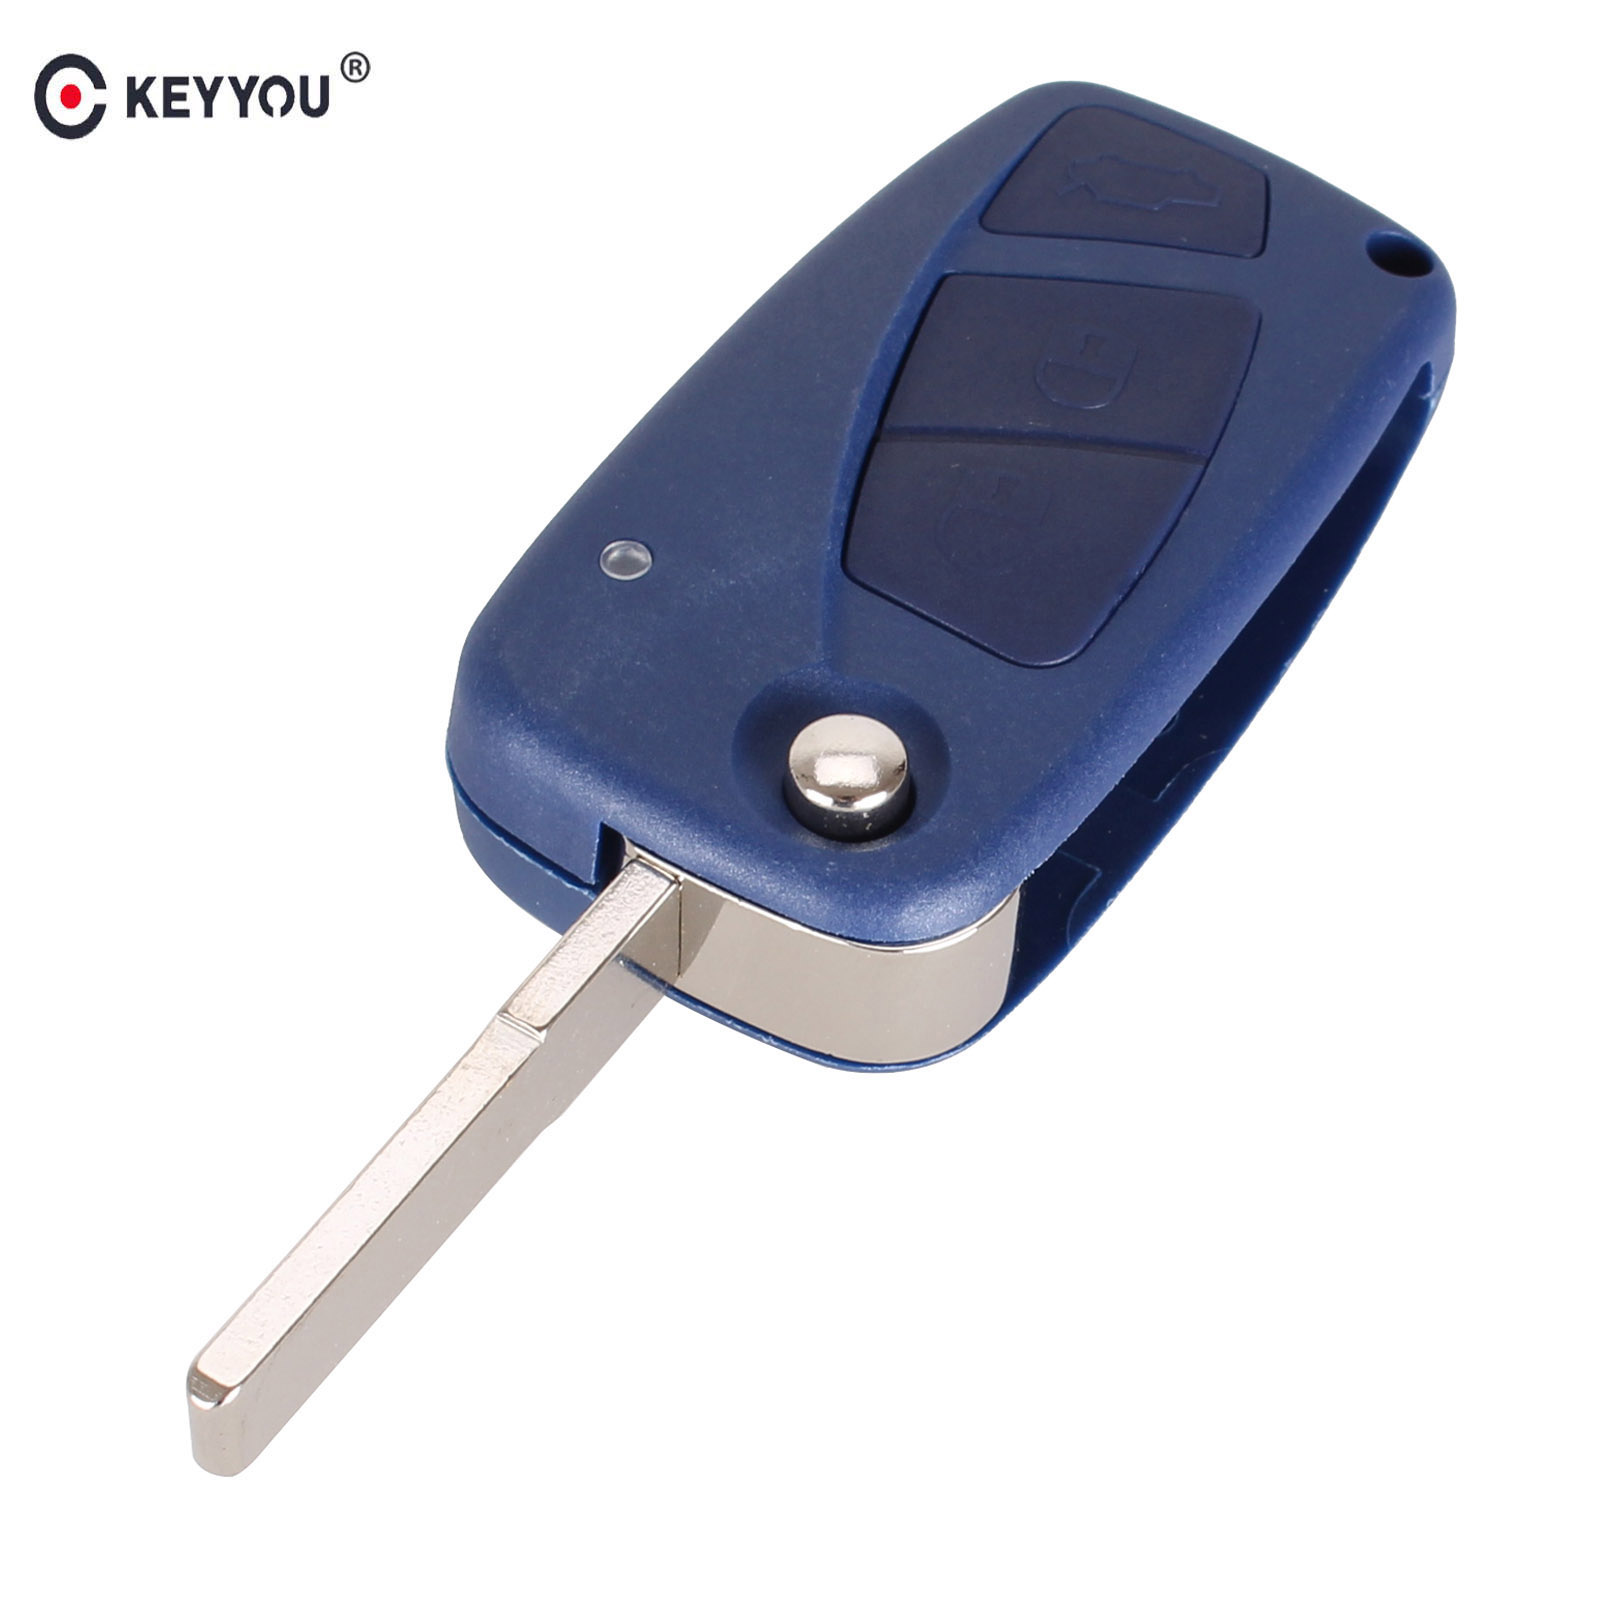 KEYYOU Flip Remote Key Shell for FIAT Punto Ducato Stilo Panda Idea Doblo Bravo Keyless Fob Case 3 Buttons SIP22 blade катушка зажигания для alfa romeo fiat 500 bravo doblo idea panda lancia 46777288